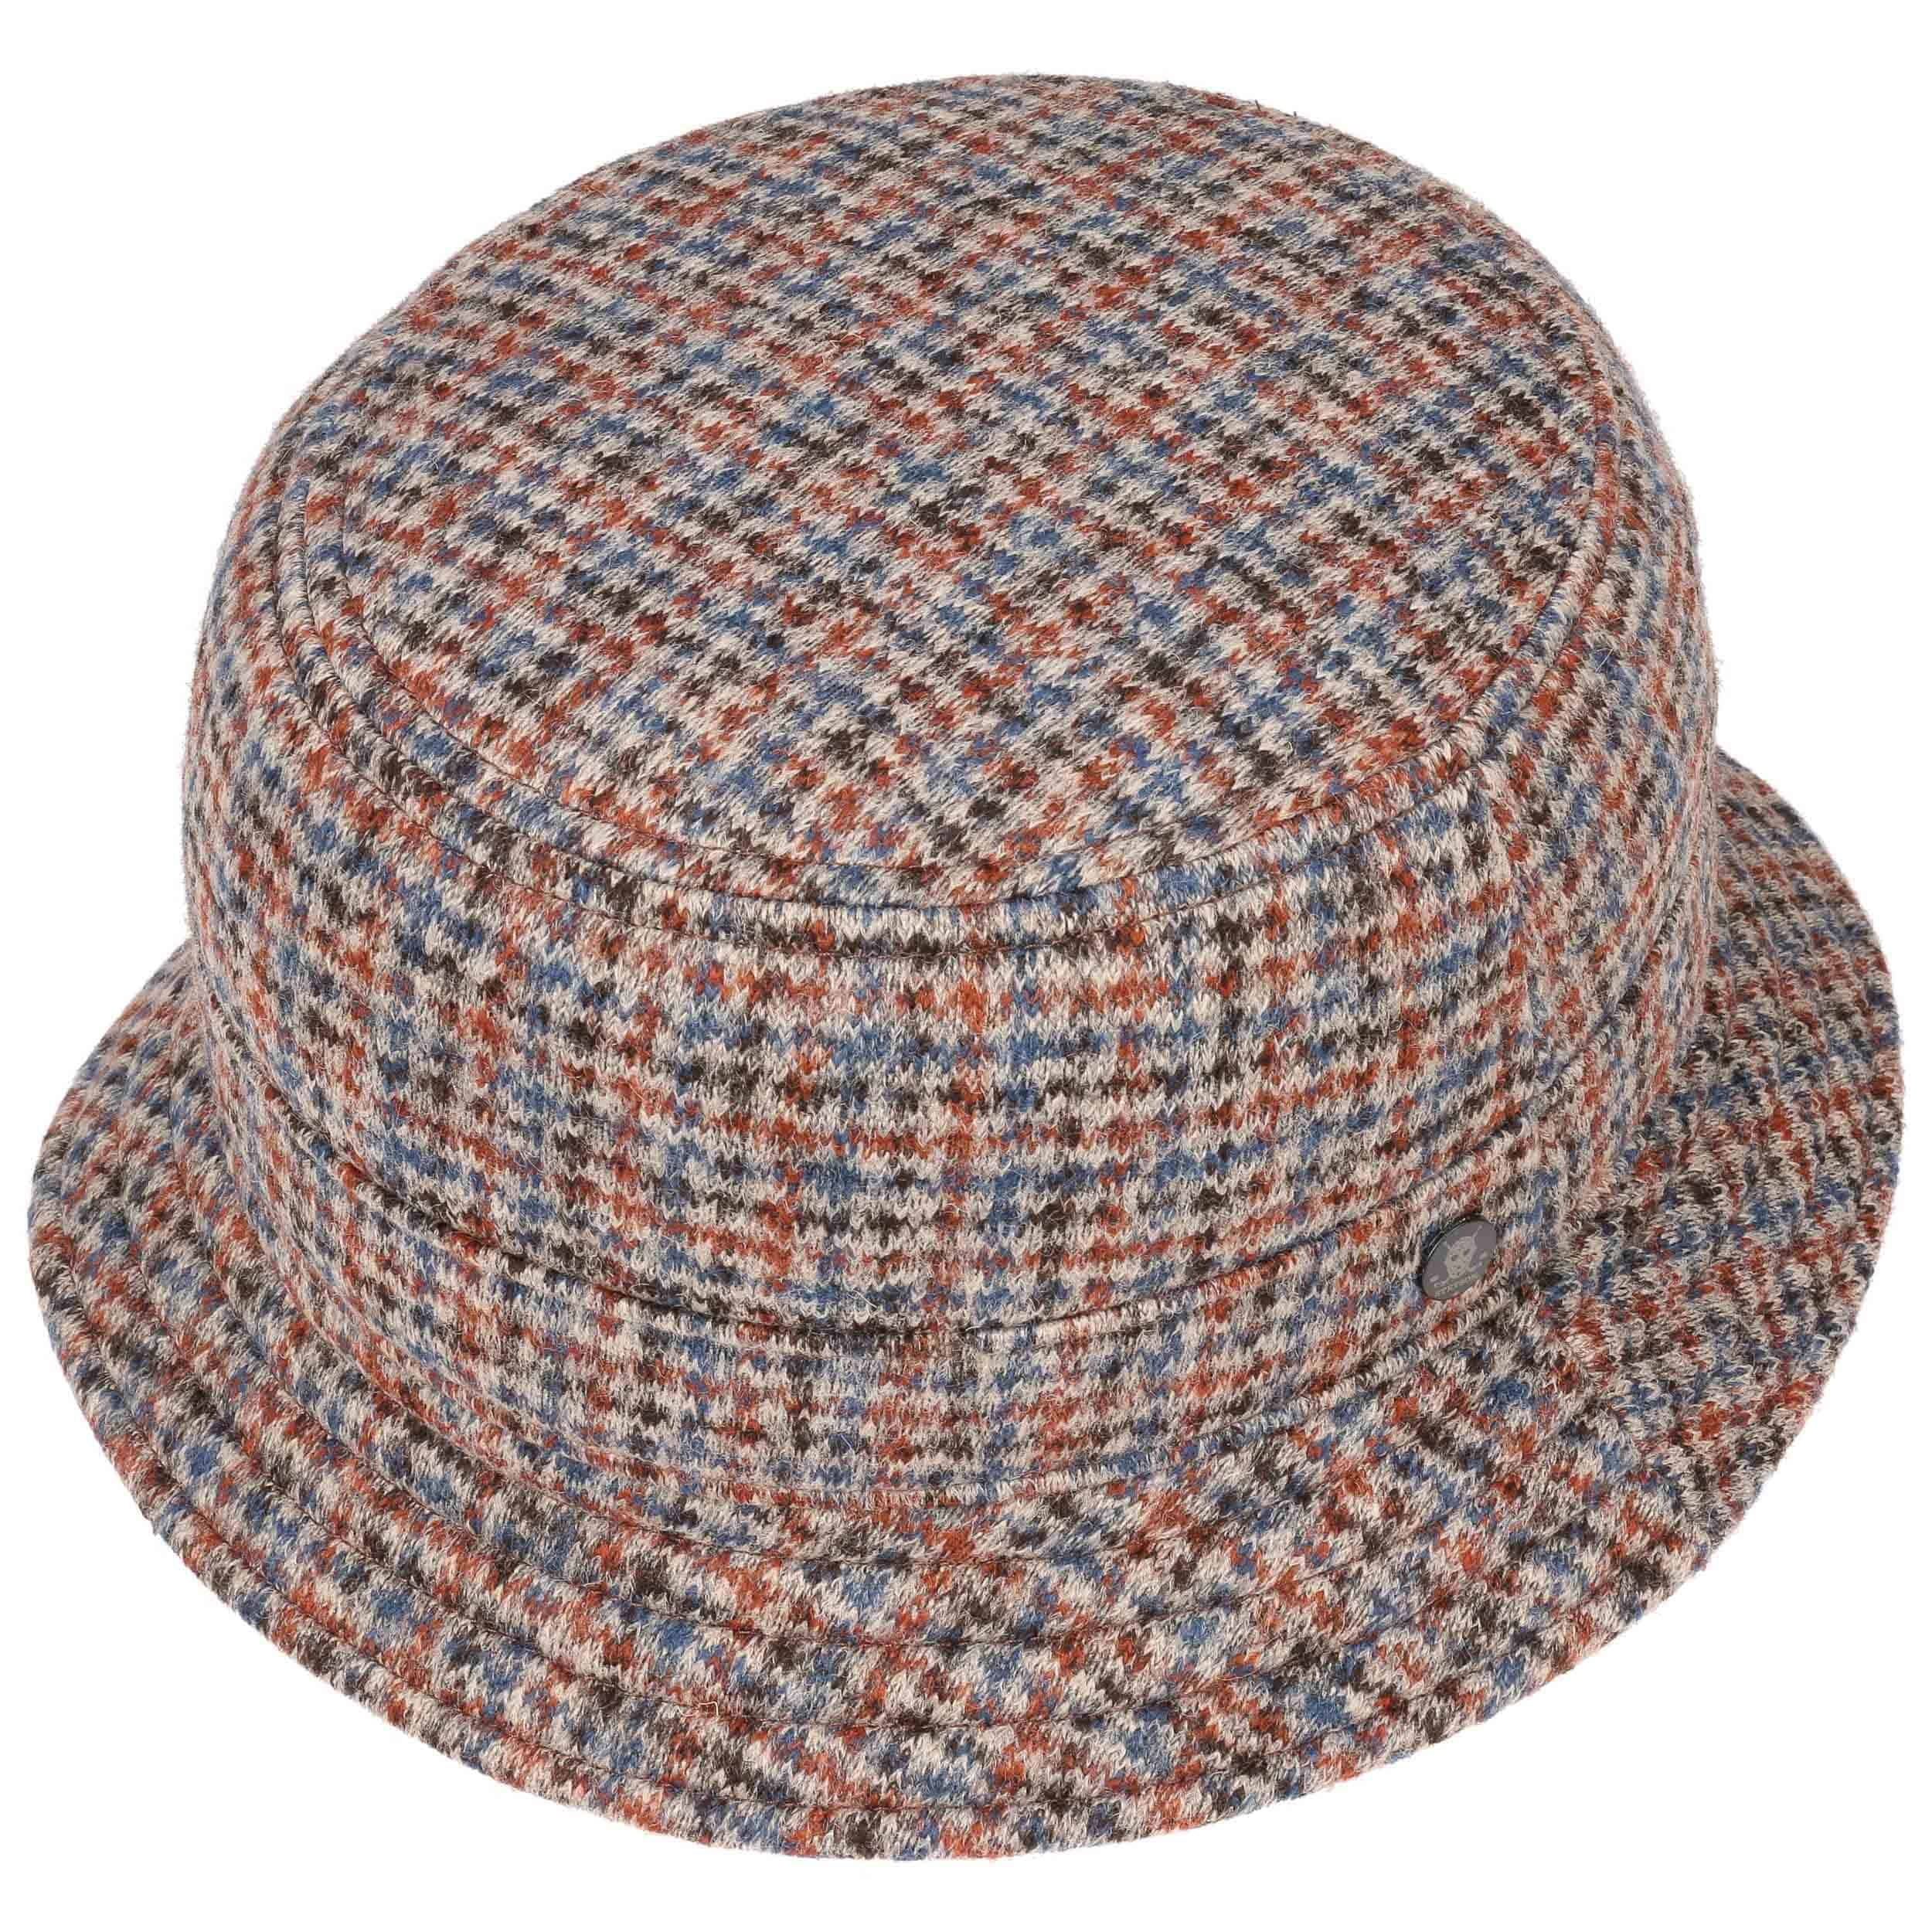 Florida Wool Bucket Hat rost